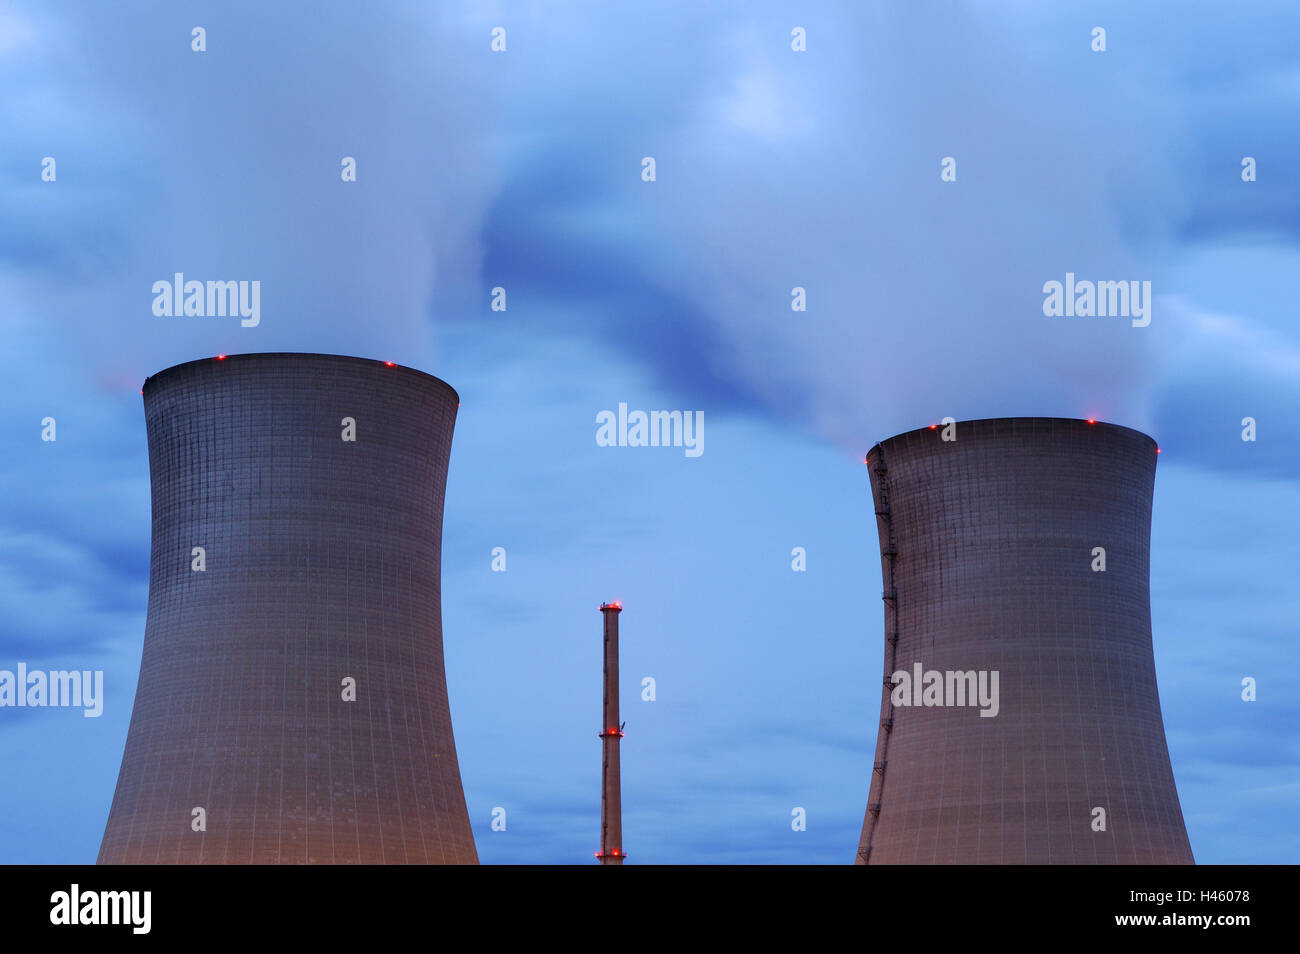 Germany, Bavaria, nuclear power plant, field Grafenrhein, cooling towers, smoke, evening, Lower Franconia, field - Stock Image